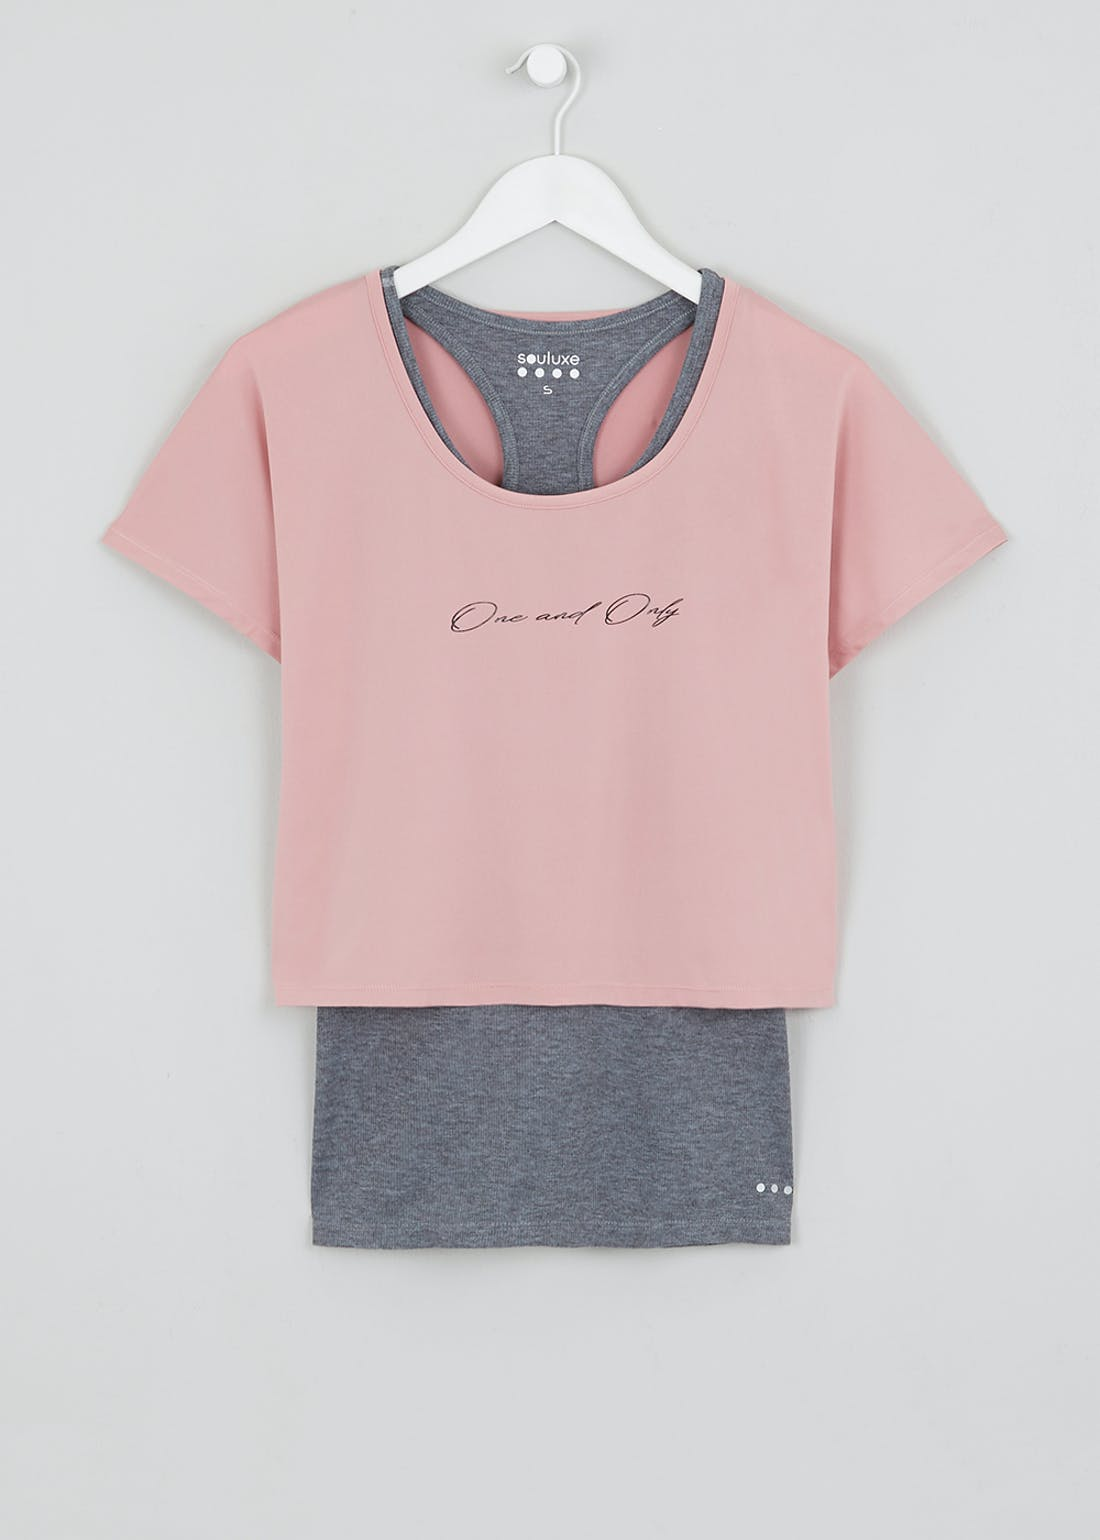 Souluxe 2 in 1 Slogan Gym Top